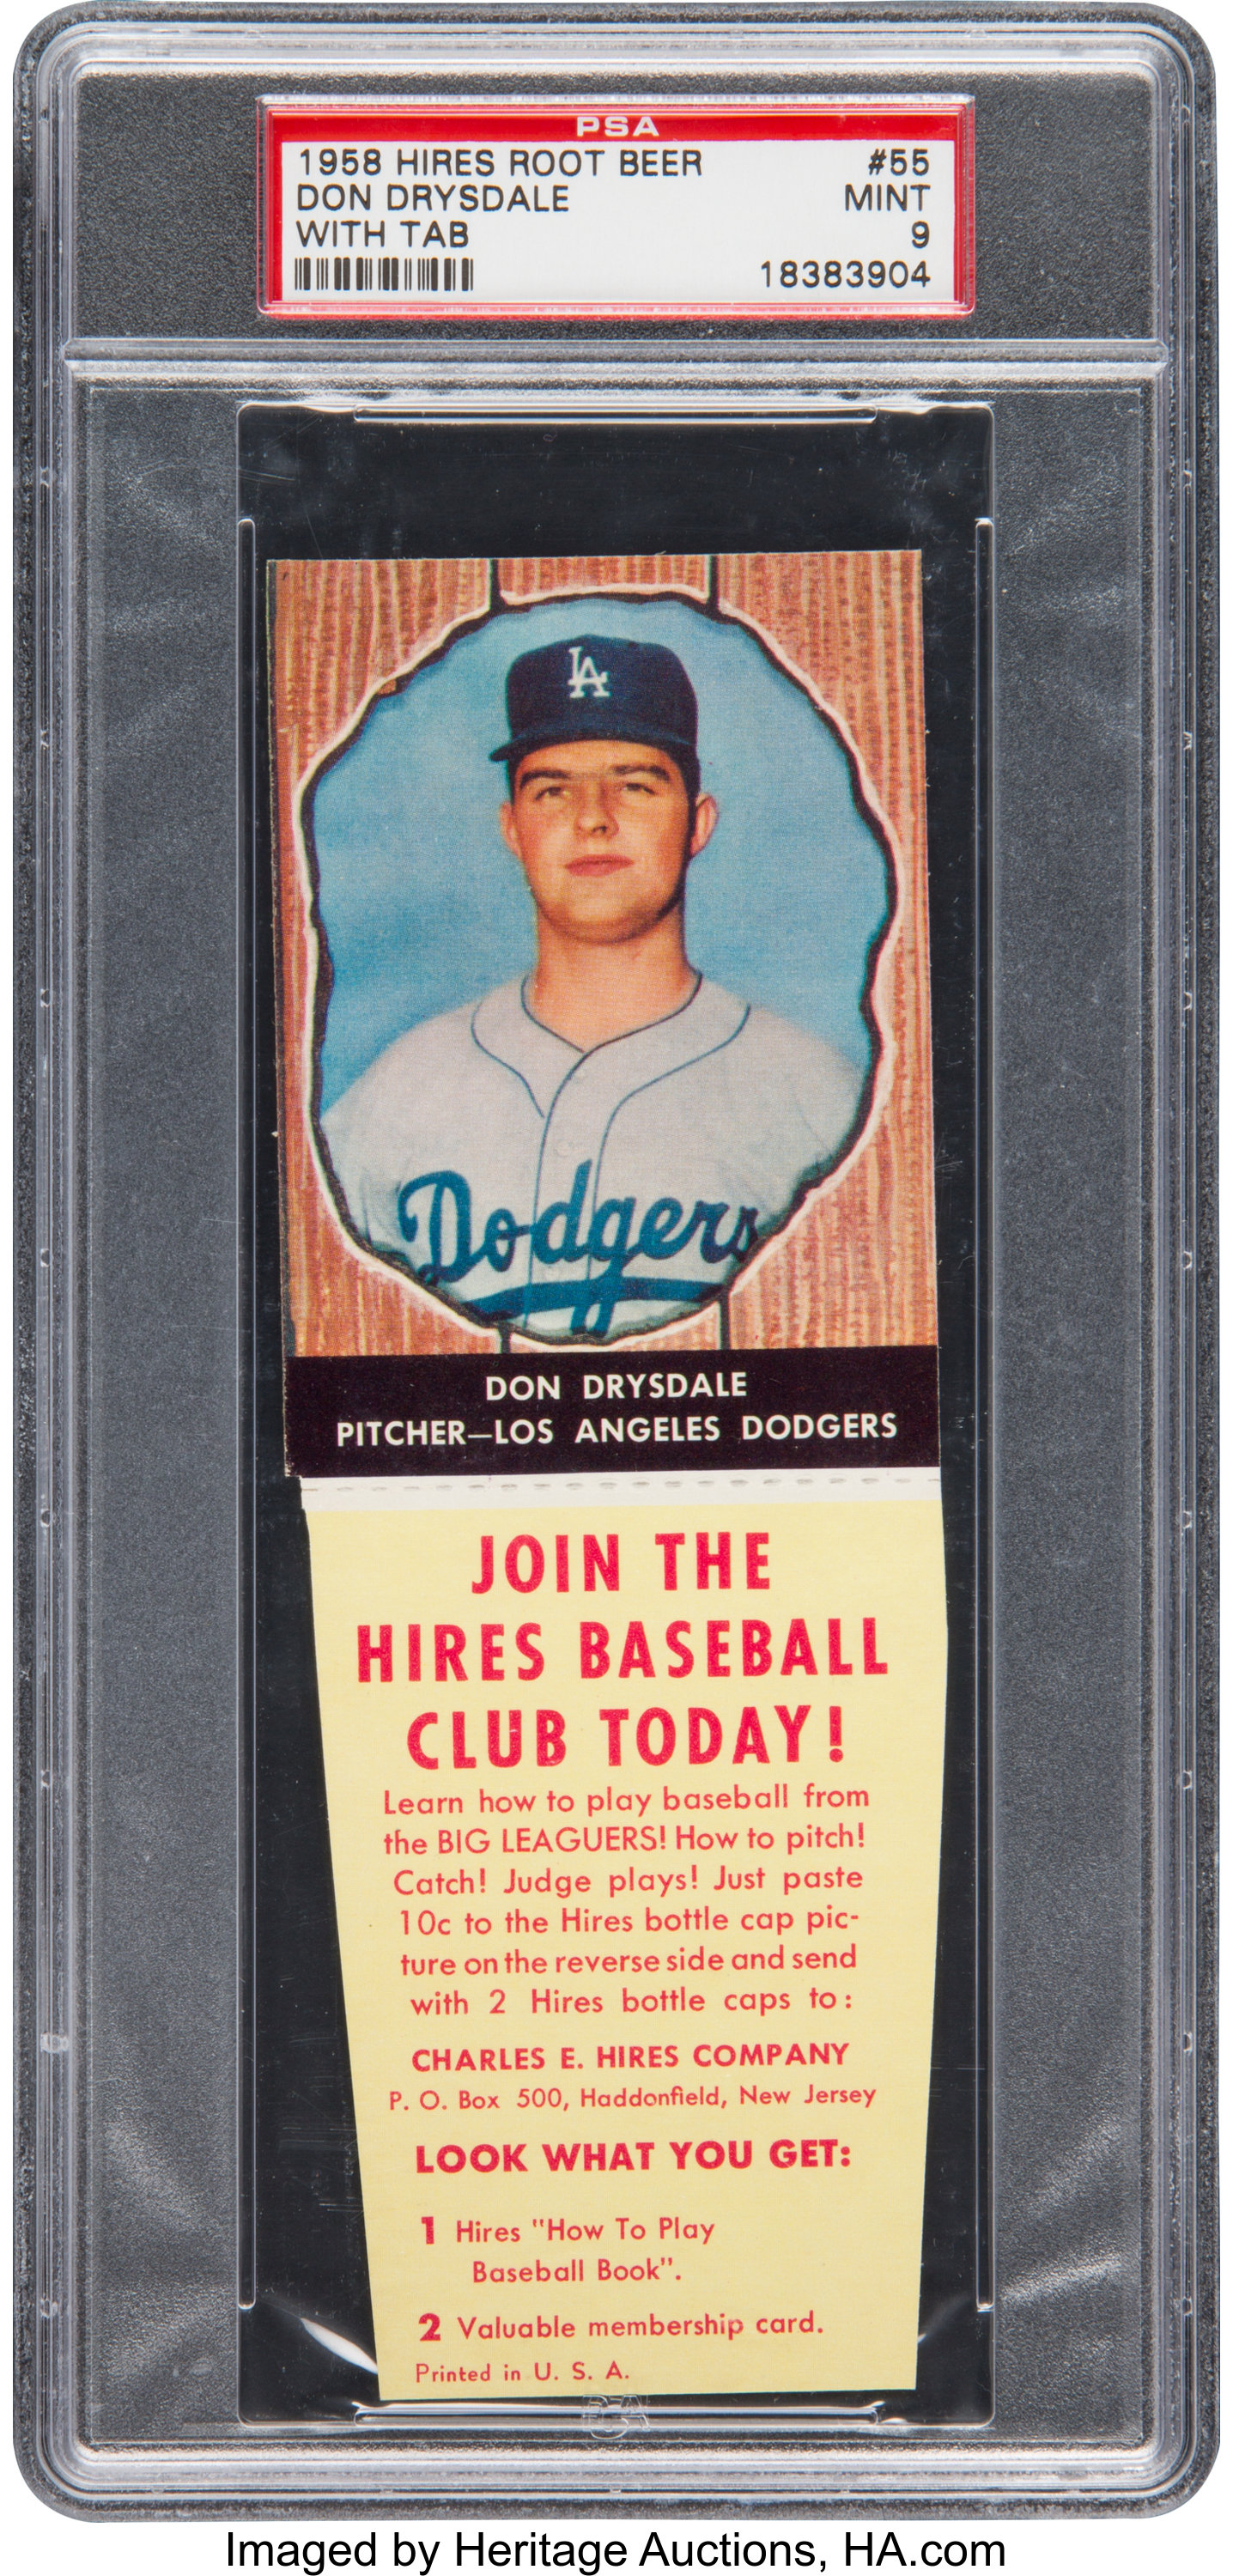 1958 Hires Root Beer Don Drysdale 55 Psa Mint 9 Pop Three